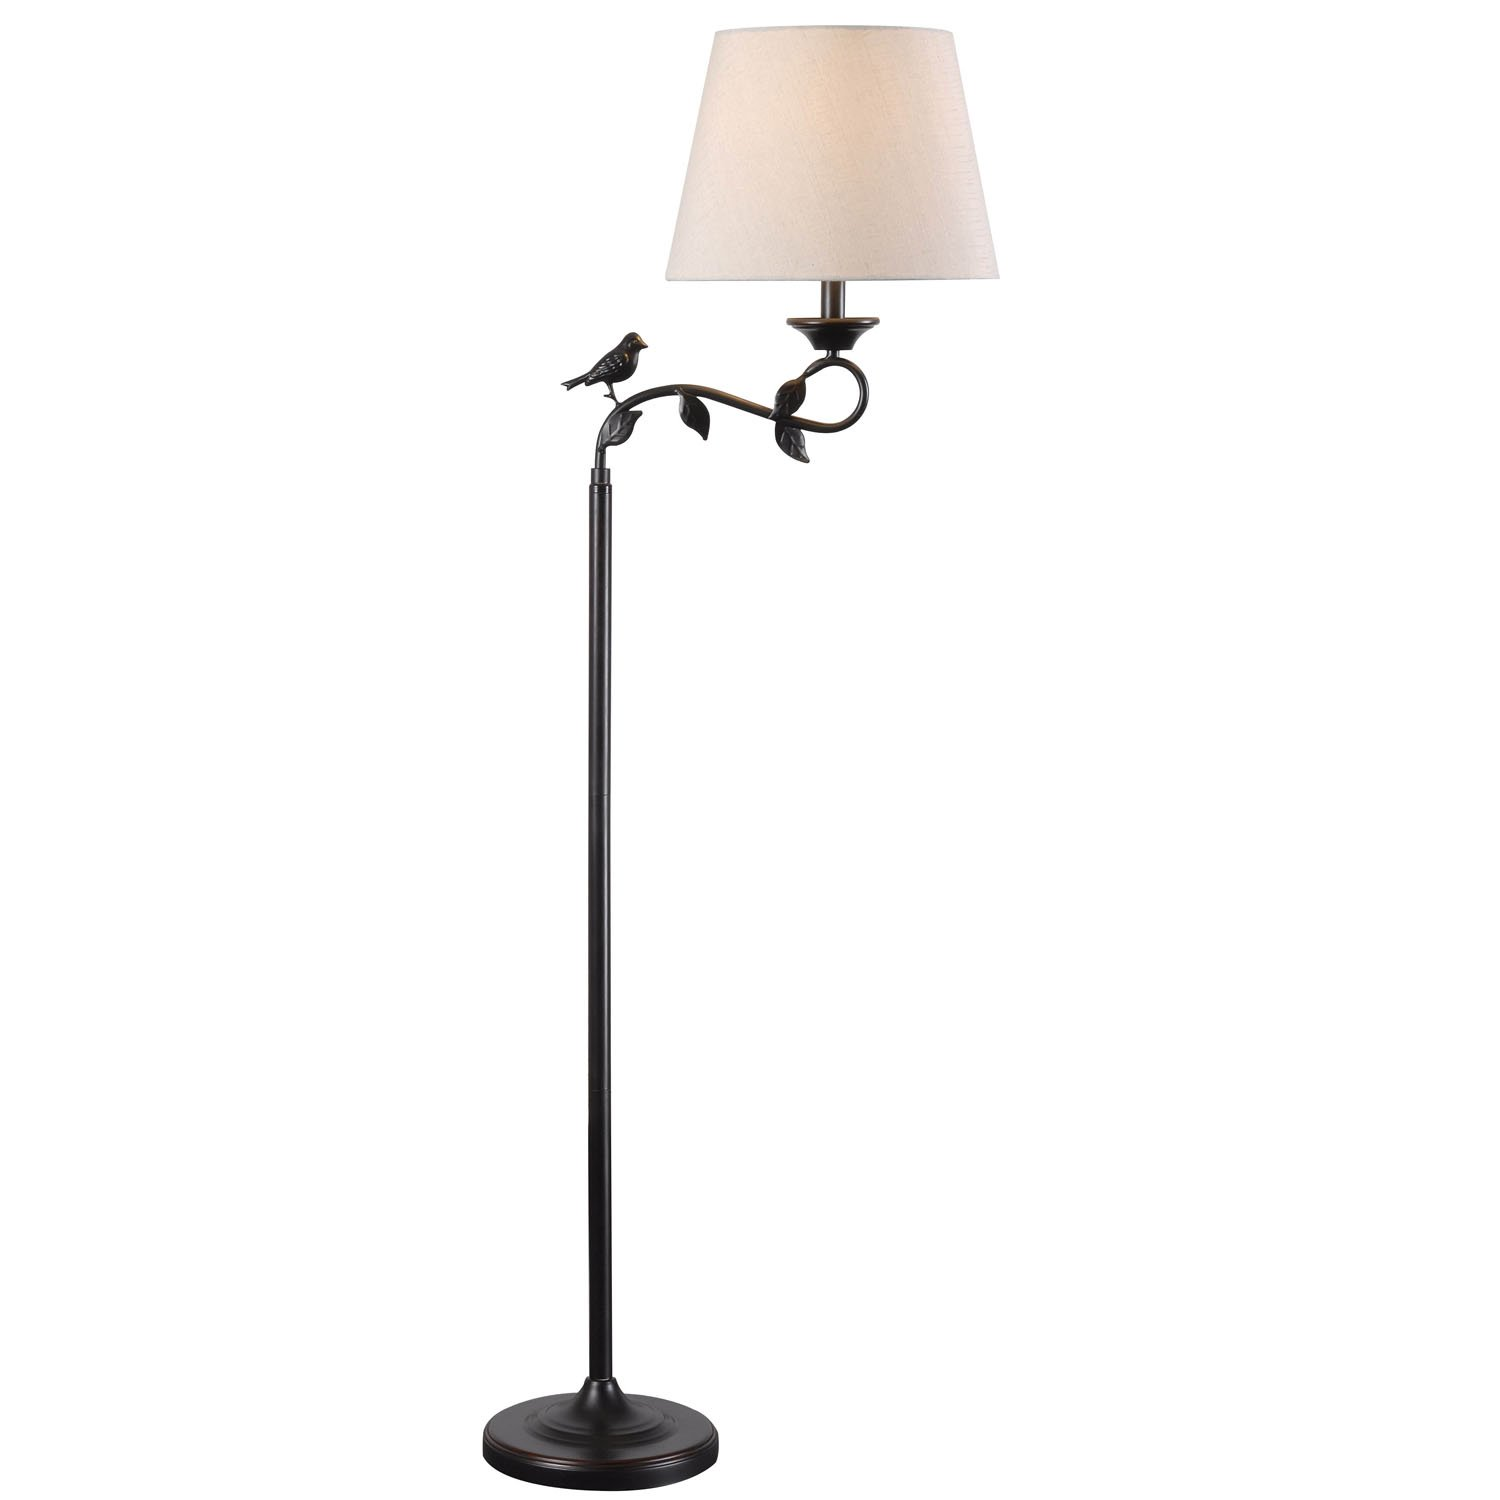 Kenroy Home 32613ORB Birdsong Swing Arm Floor Lamp, 10.12'' x 60'' x 21'', Oil Rubbed Bronze Finish with Gold Highlights